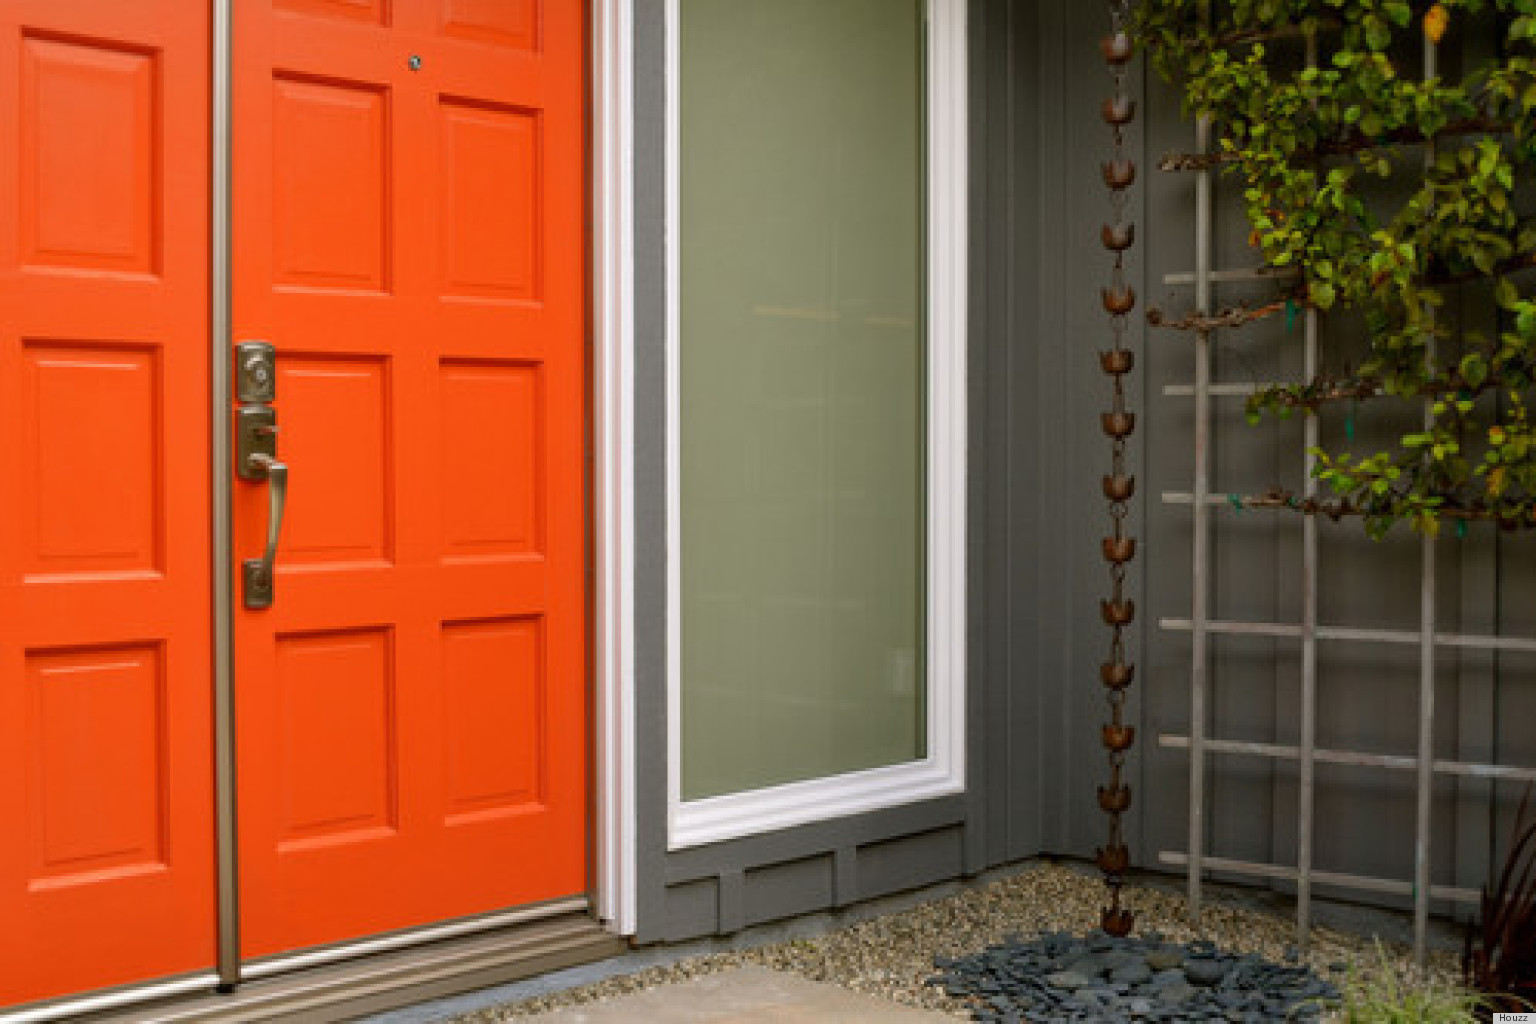 The 6 Absolute Best Paint Colors For Your Front Door  PHOTOS    HuffPostThe 6 Absolute Best Paint Colors For Your Front Door  PHOTOS  . Painting New Steel Entry Doors. Home Design Ideas